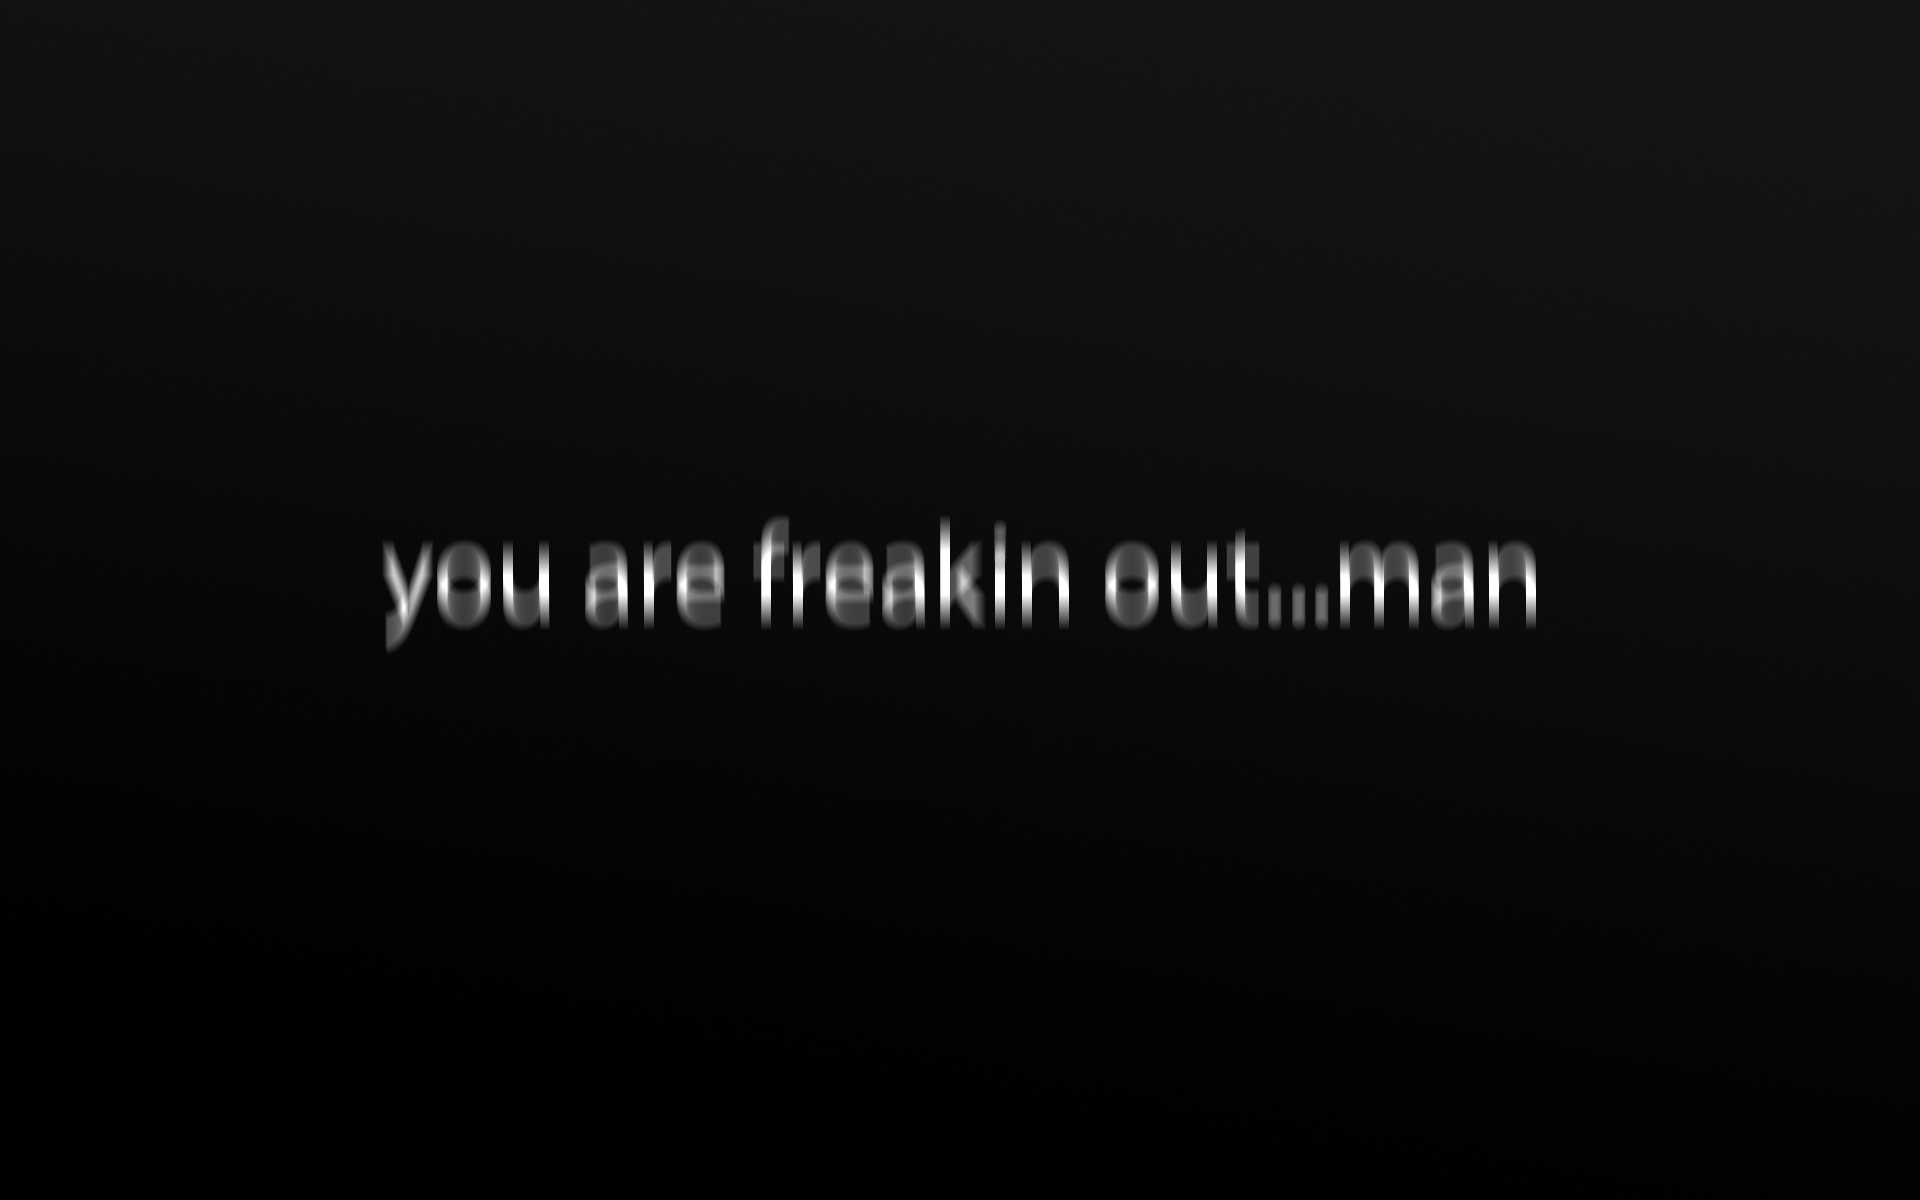 You are freaking out … man wallpaper – 691264